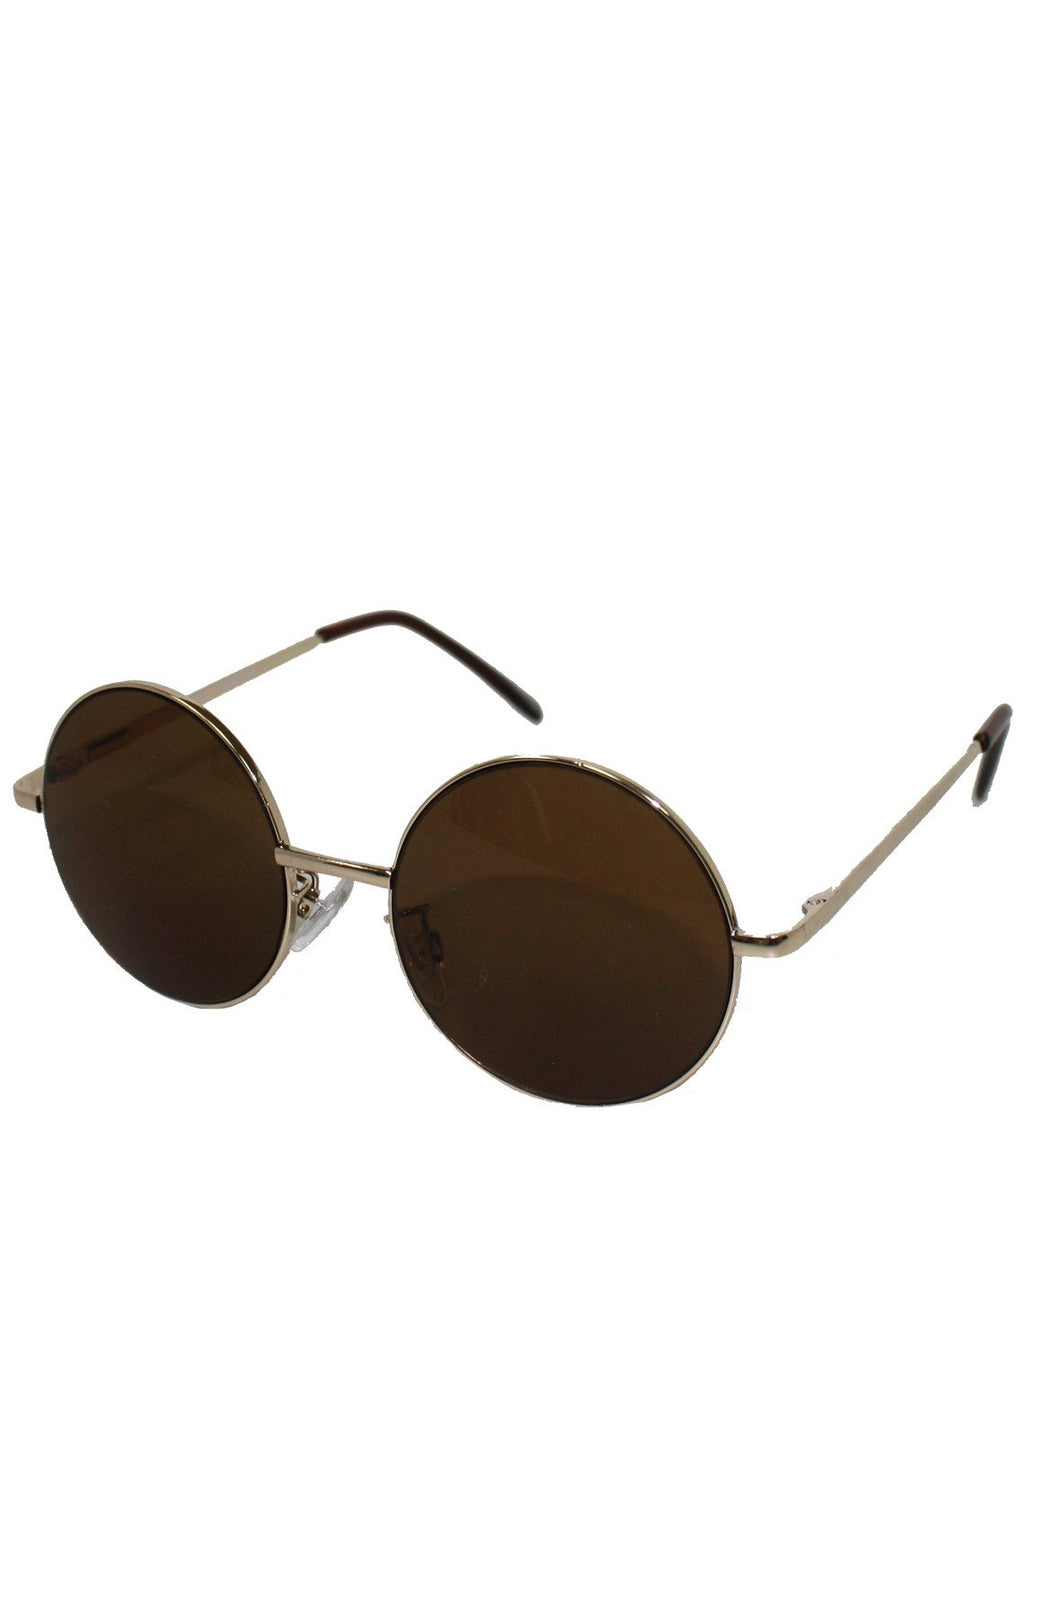 LENNON GLASSES BROWN